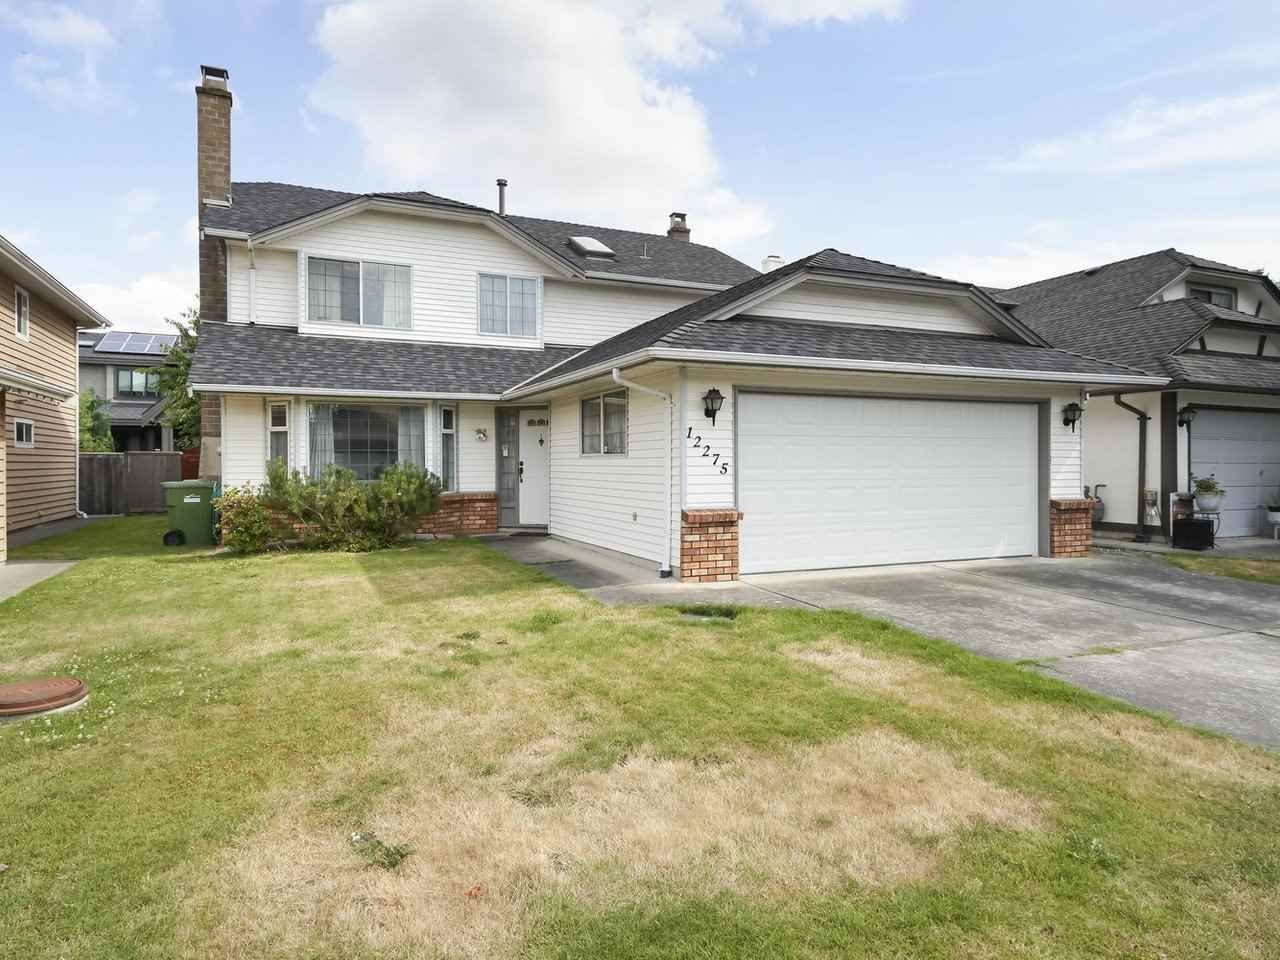 Main Photo: 12275 GREENLAND Drive in Richmond: East Cambie House for sale : MLS®# R2391964